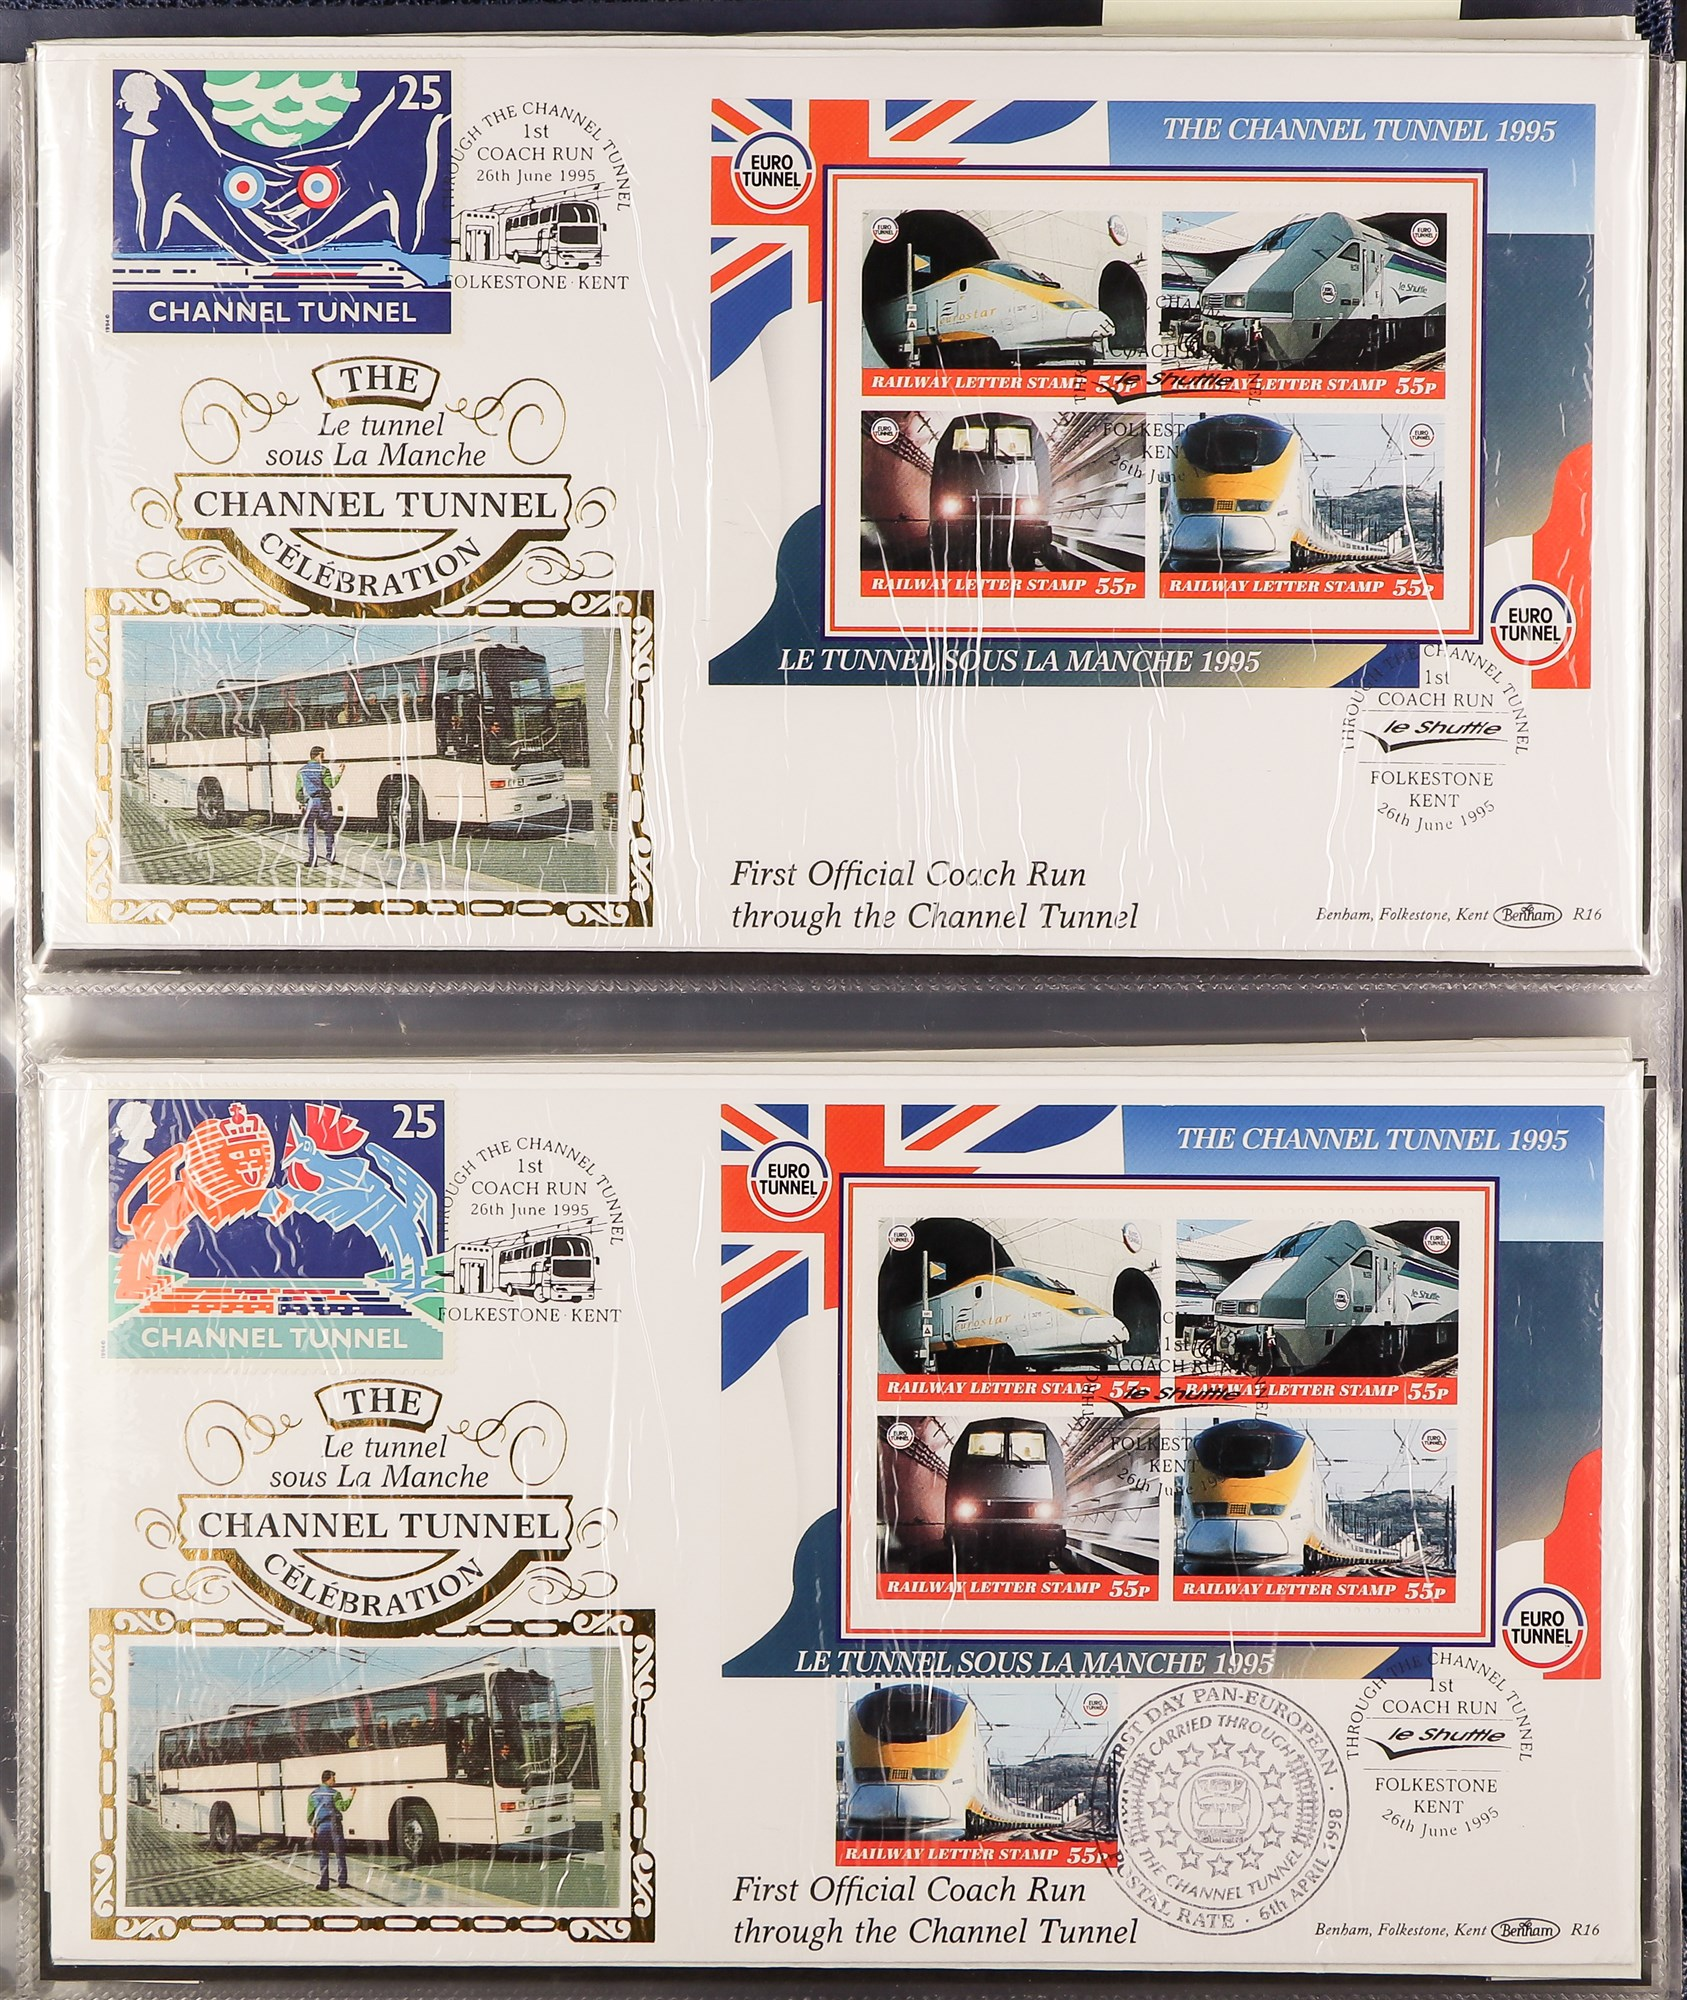 GREAT BRITAIN CHANNEL TUNNEL 1994-2001 BENHAM COVERS COLLECTION in an album, all different. (45